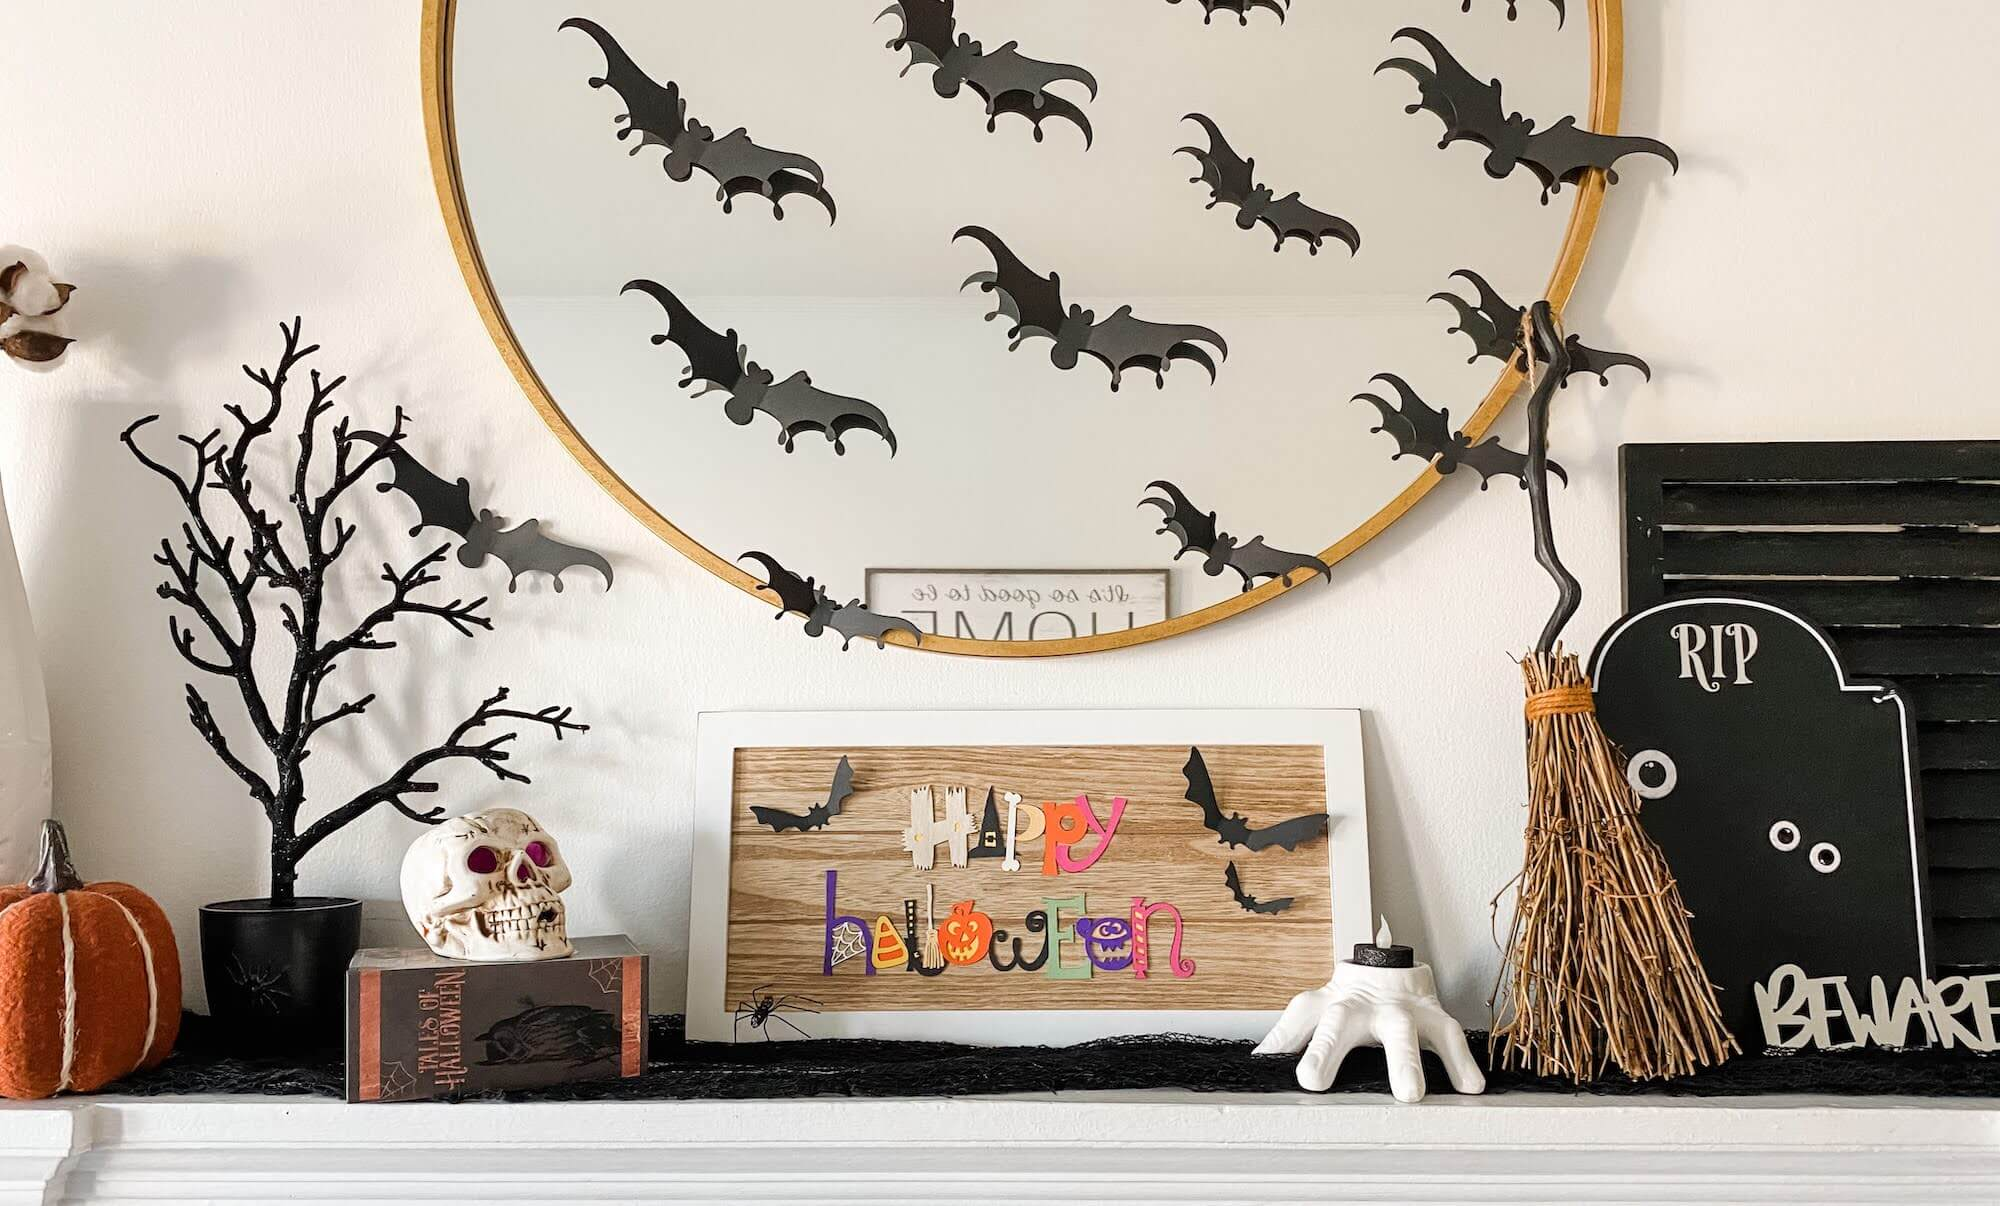 Halloween Sign on Mantel with Paper Bats